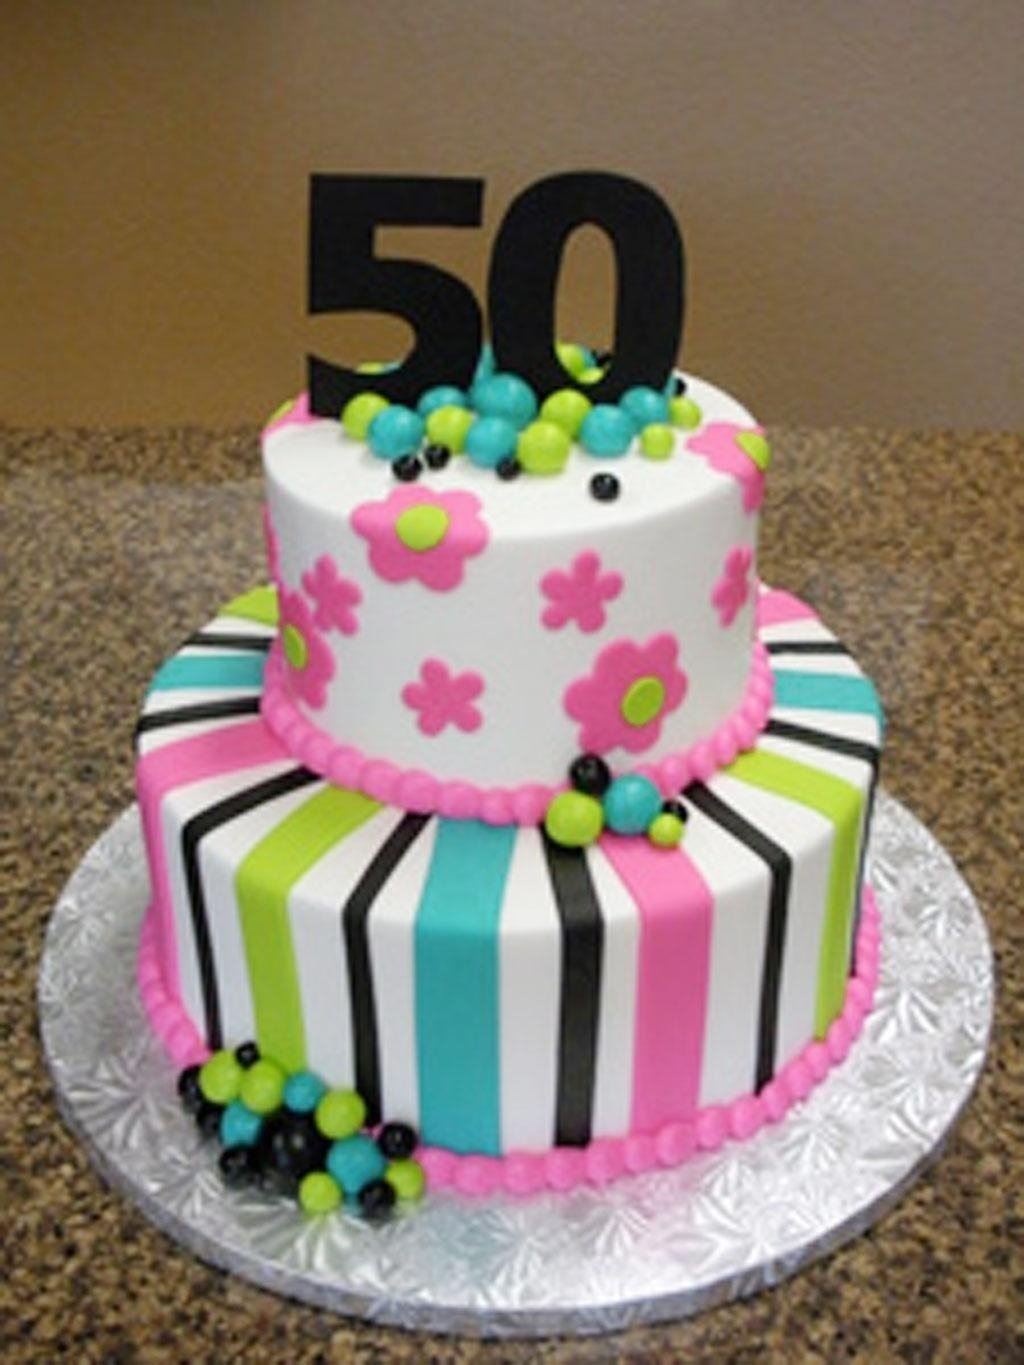 10 Wonderful Ideas For 50Th Birthday Cake 50th Cakes Pictures Women